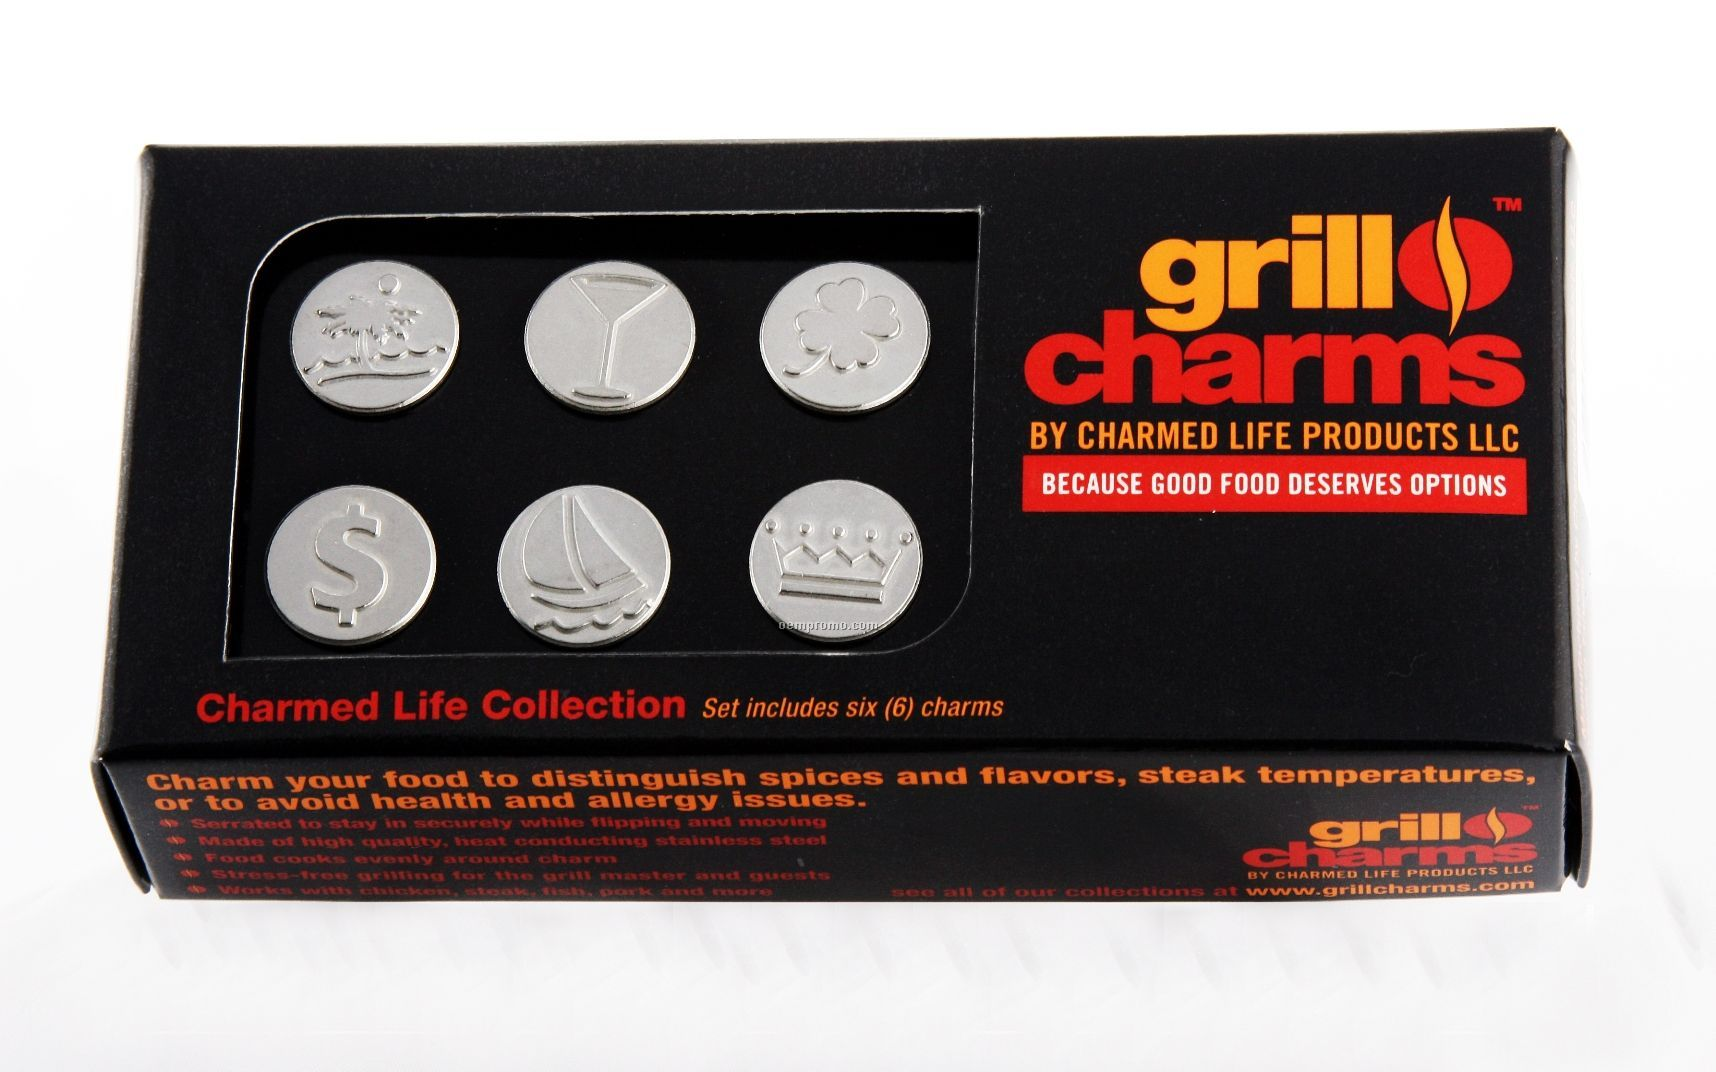 Blank Charmed Life Collection Grill Charms